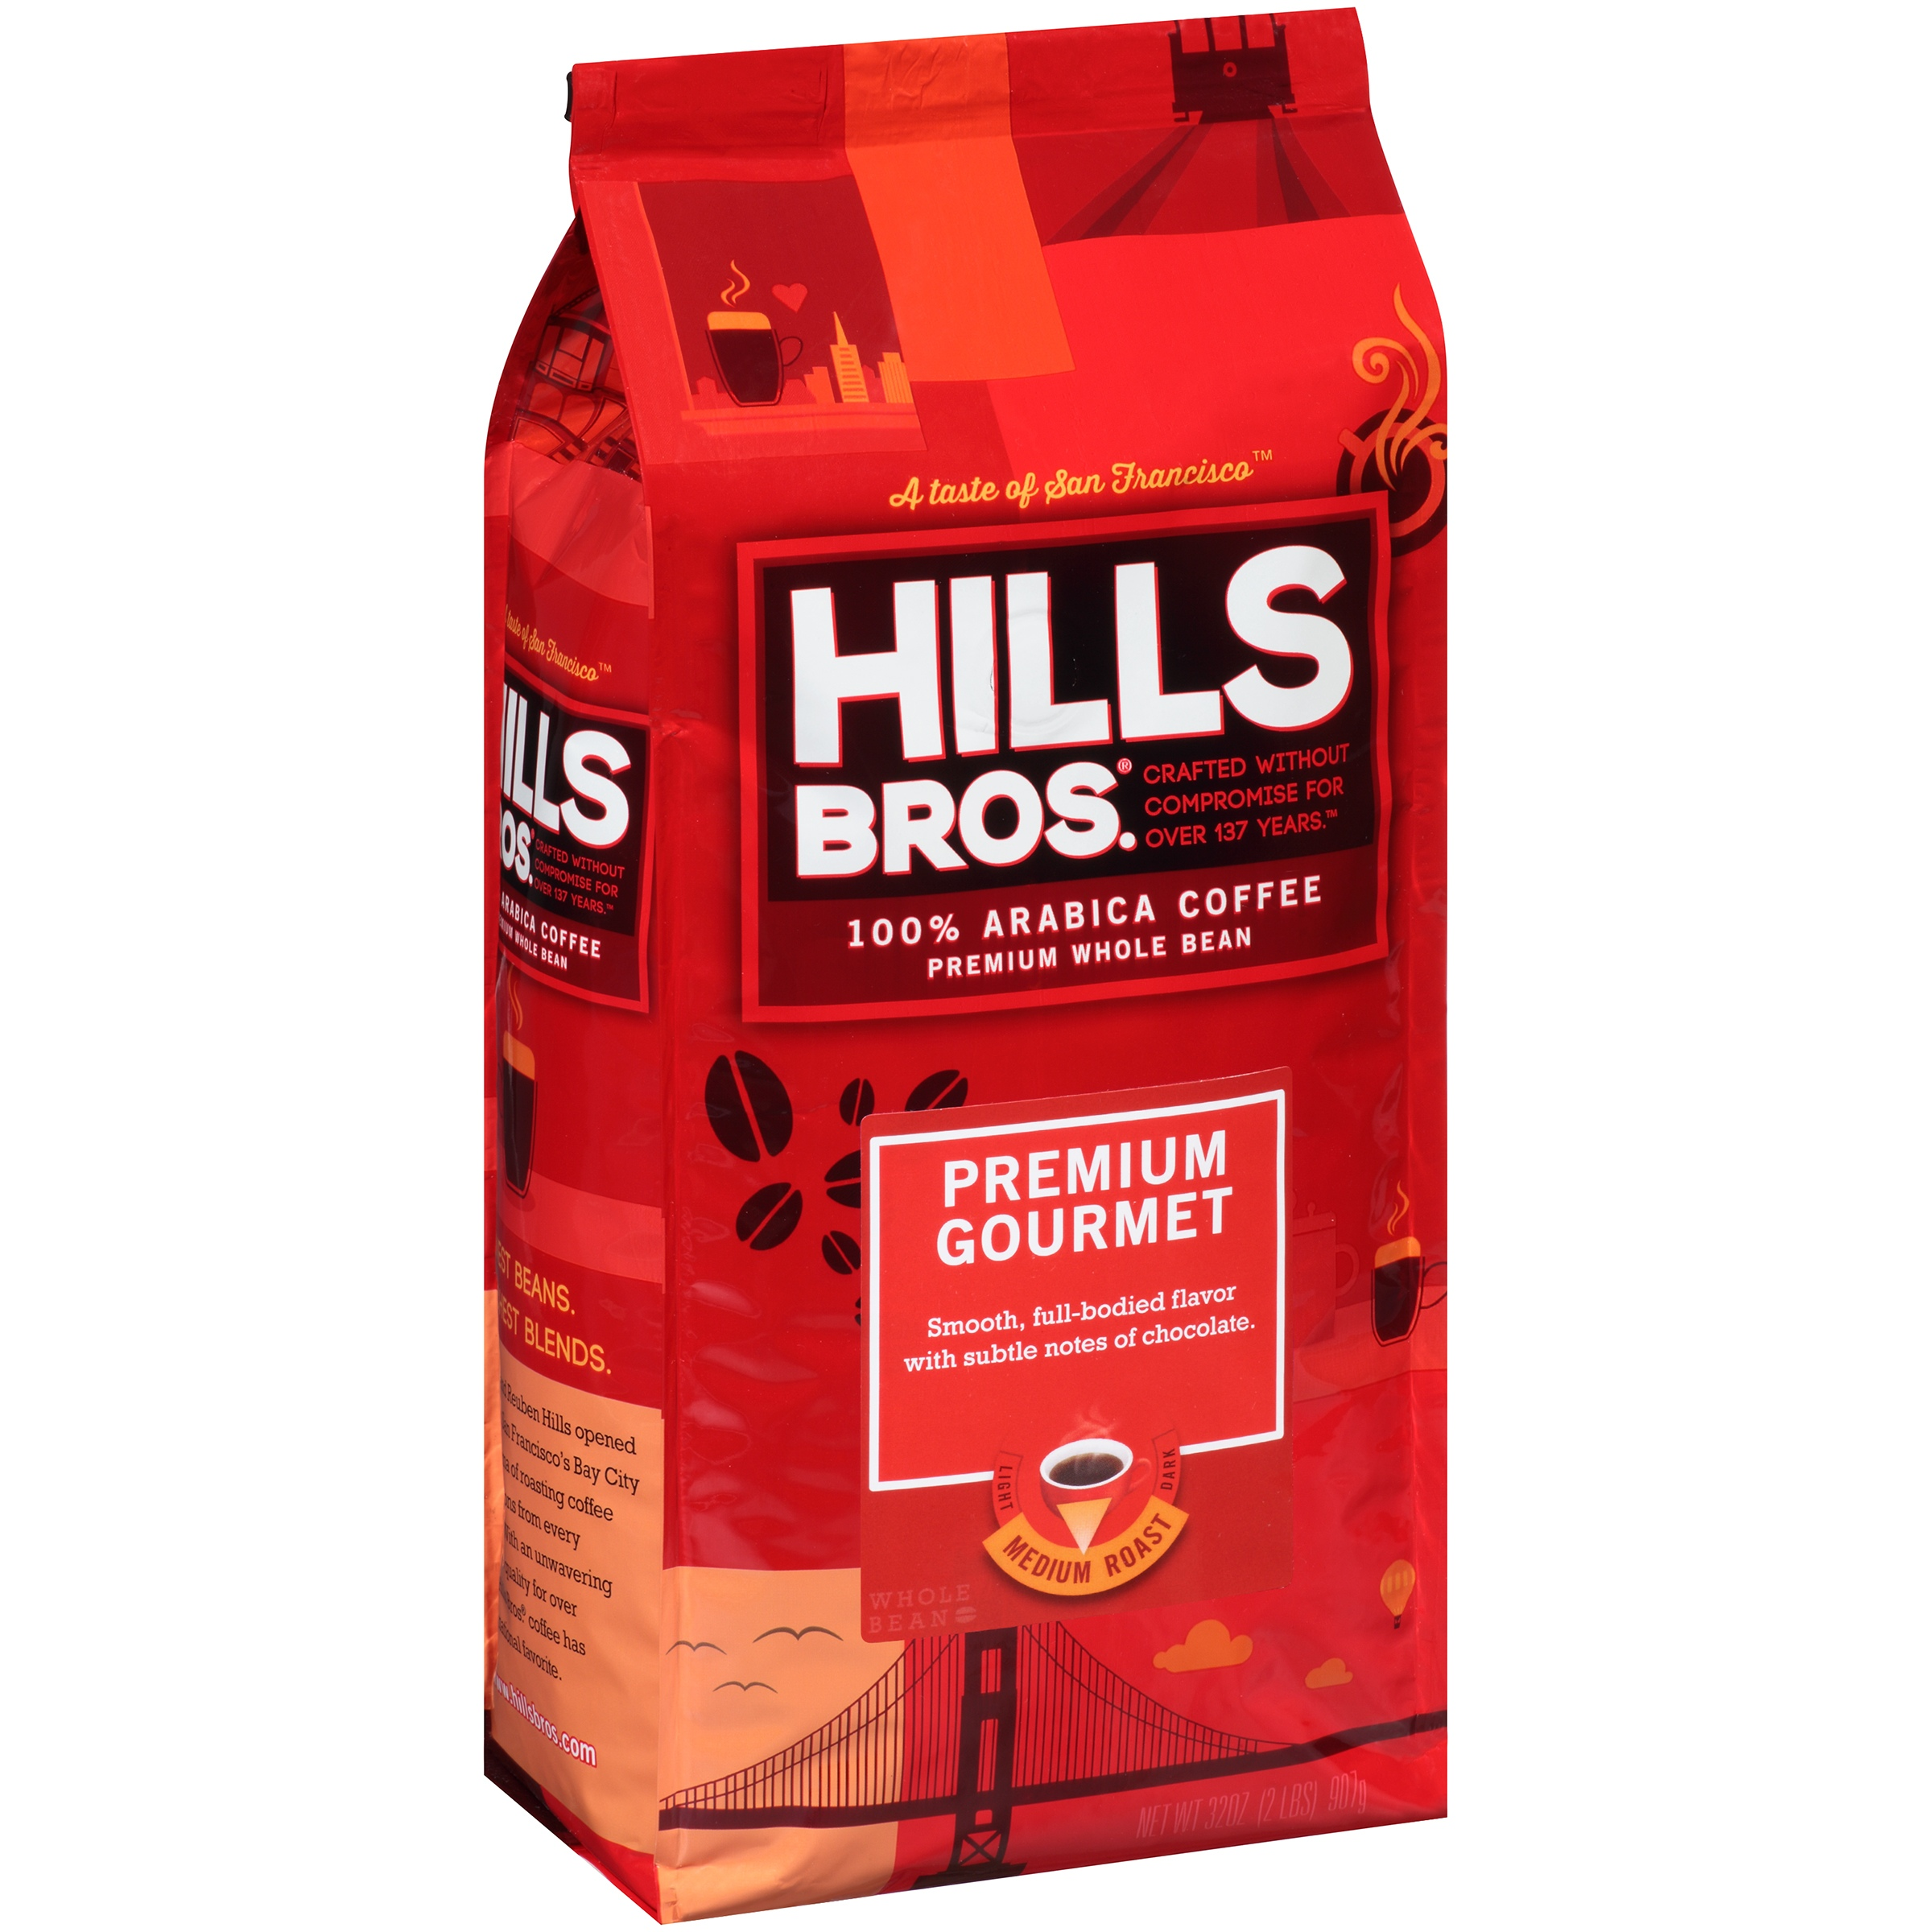 Hills Bros. Premium Gourmet Medium Roast Whole Bean 100% Arabica Coffee, 32 oz